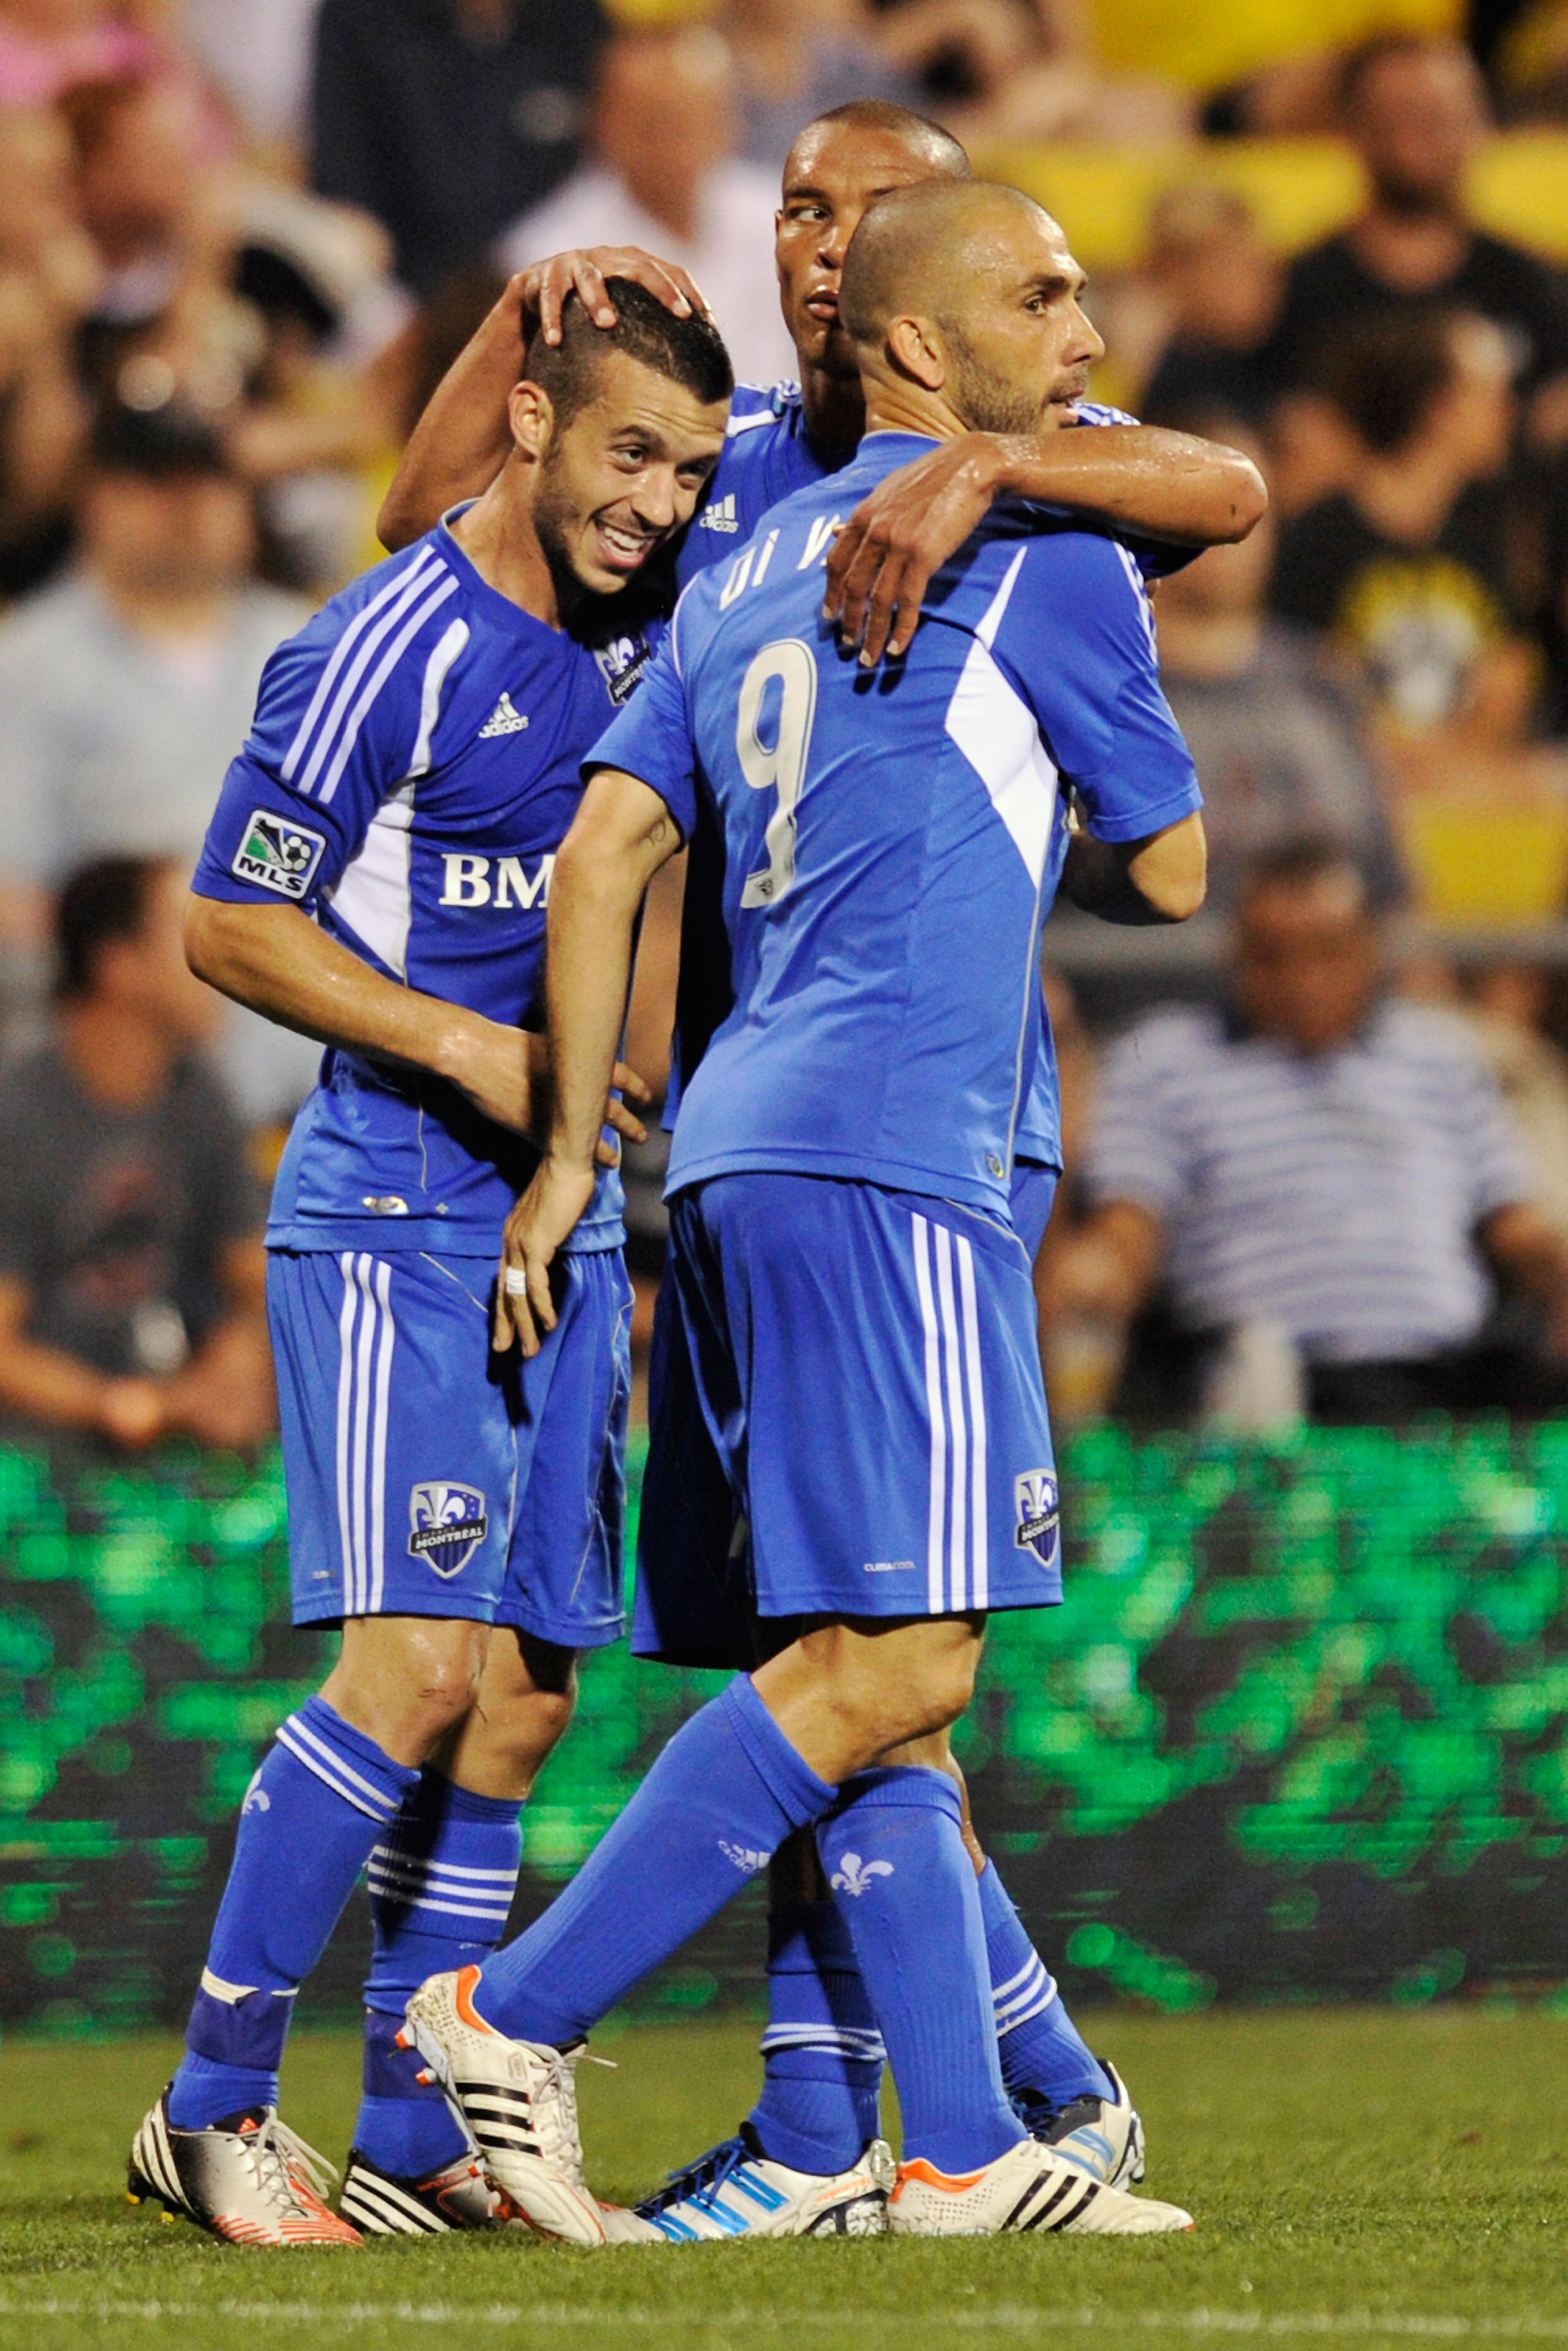 Will Felipe Martins #7, Marco Di Vaio #9 and Matteo Ferrari #13 earn their invitation to the MLS playoffs? (Photo by Jamie Sabau/Getty Images)